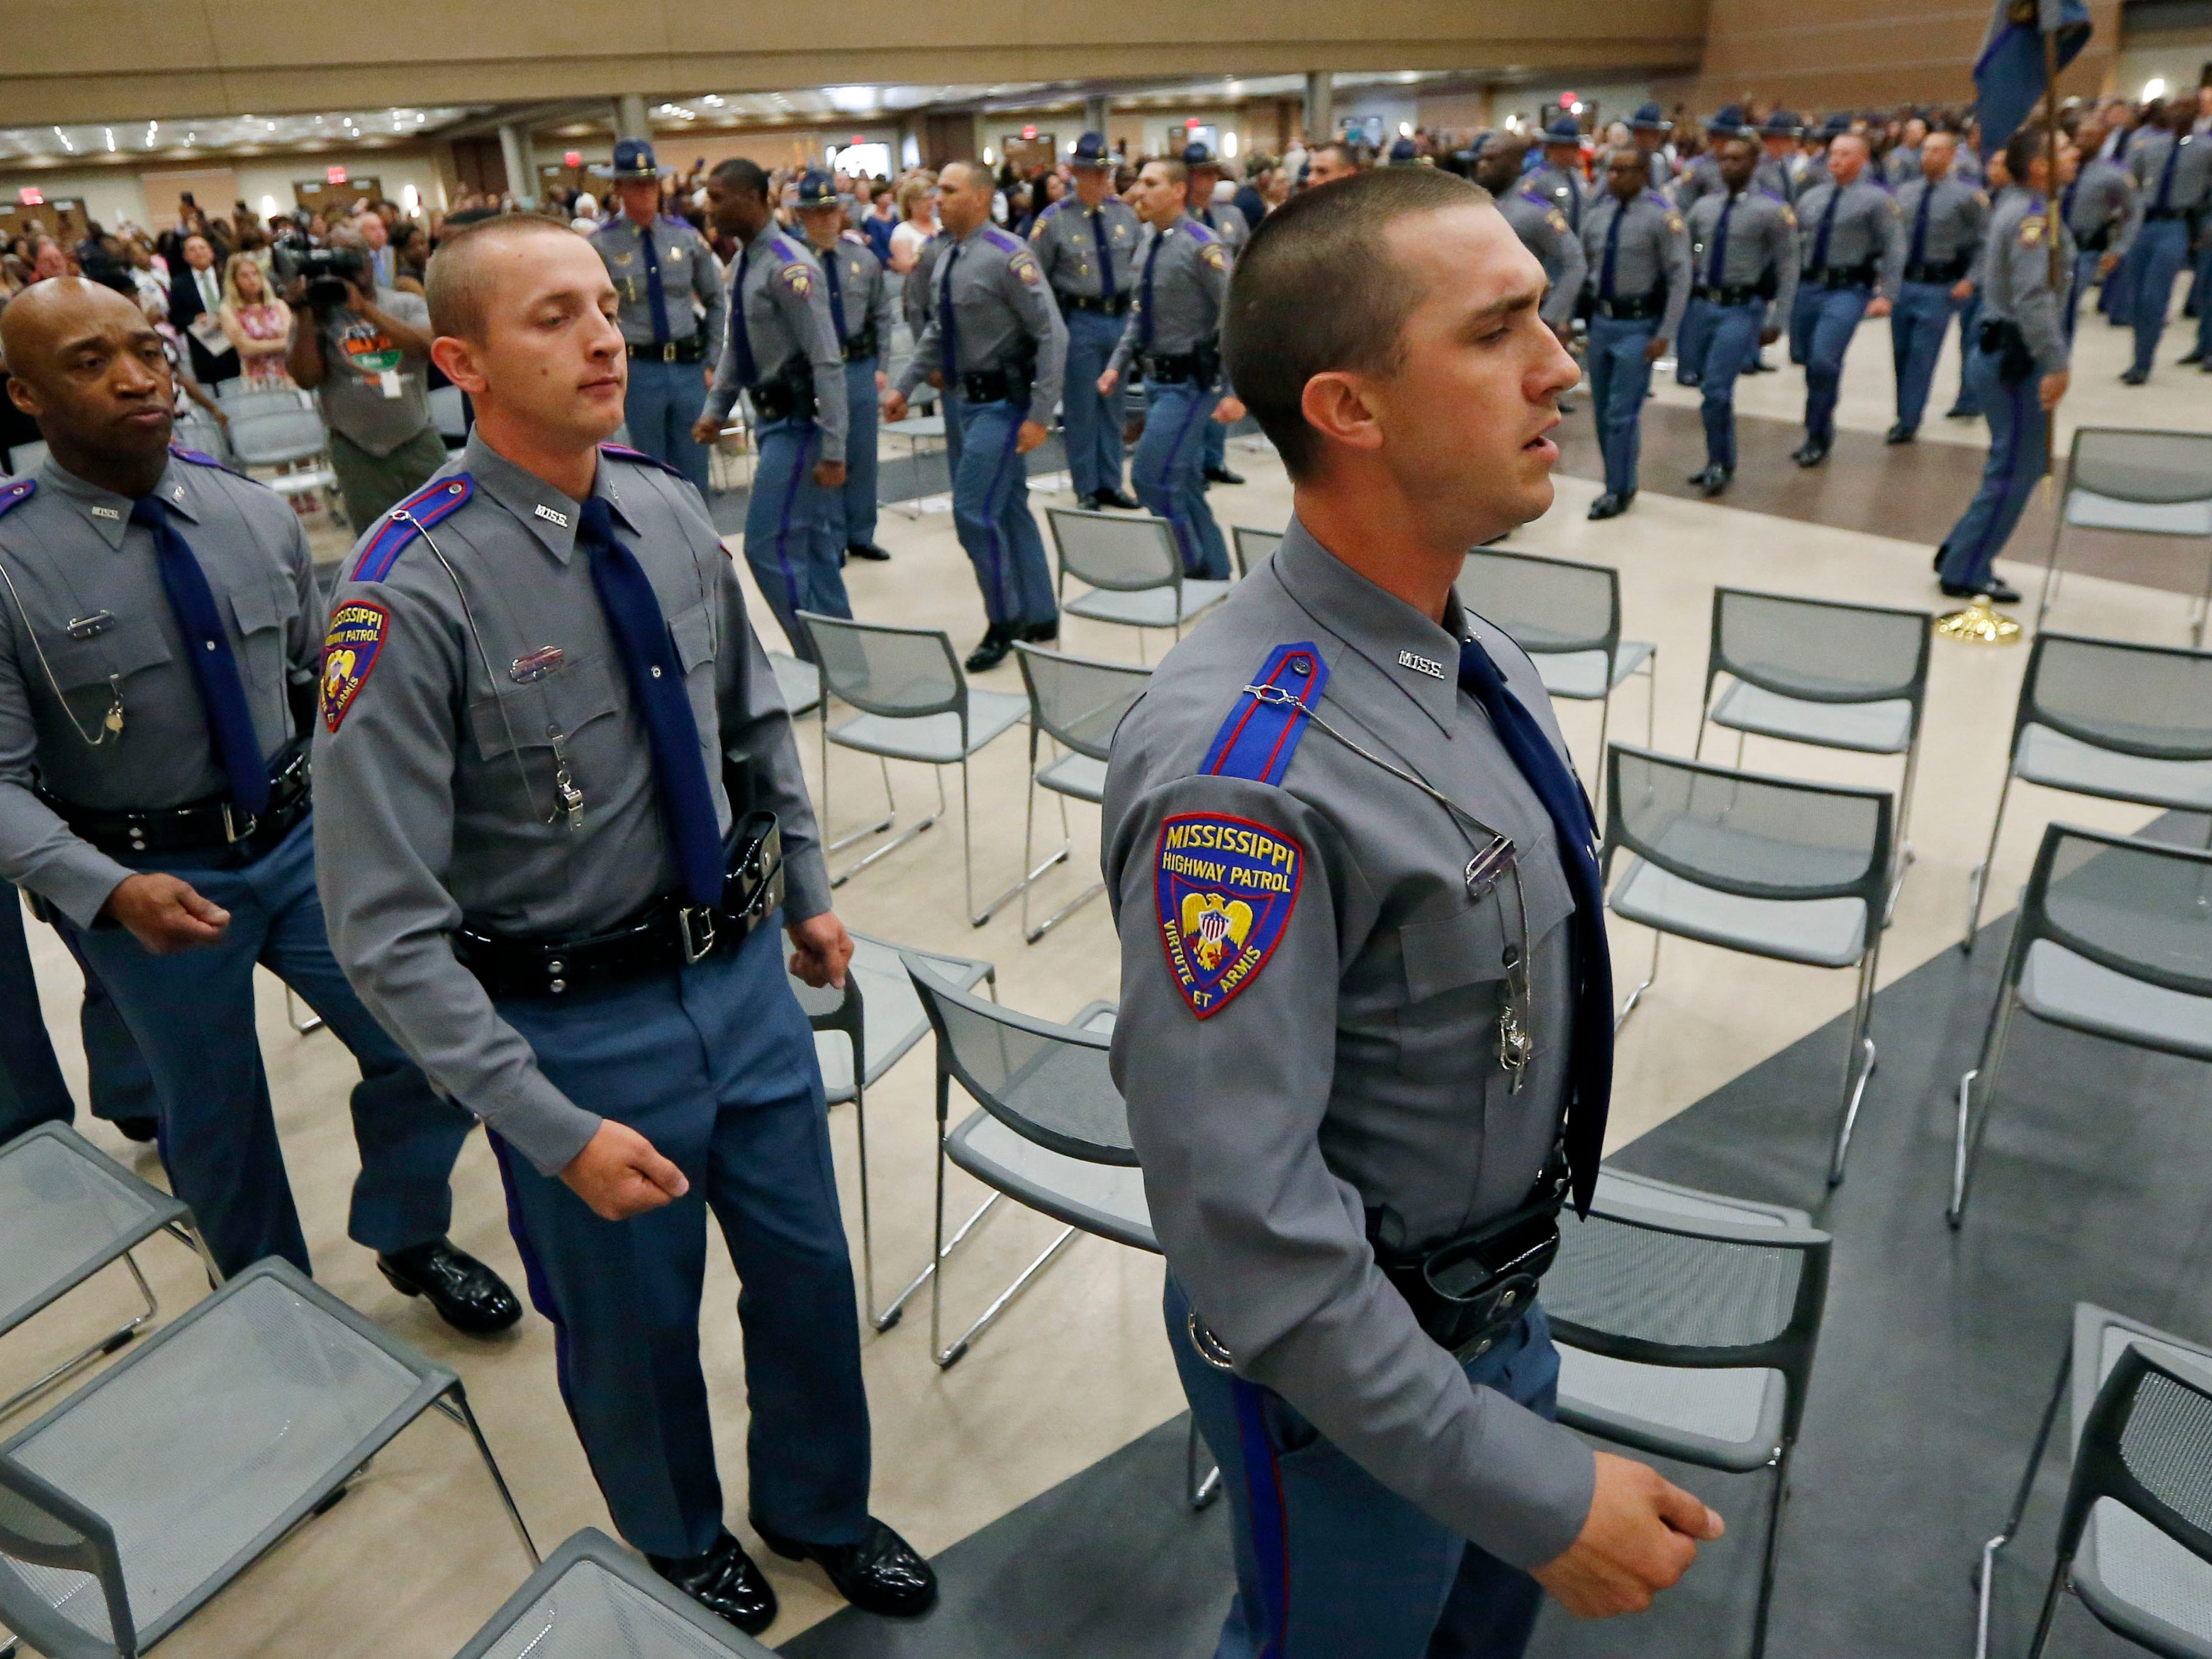 Members of the Mississippi Highway Safety Patrol Cadet Class 63 march into the Clyde Muse Center in Pearl, Miss., where in front of family, friends, lawmen and lawmakers, they will be sworn in as the newest Mississippi Highway Patrol troopers, Wednesday, May 1, 2019.